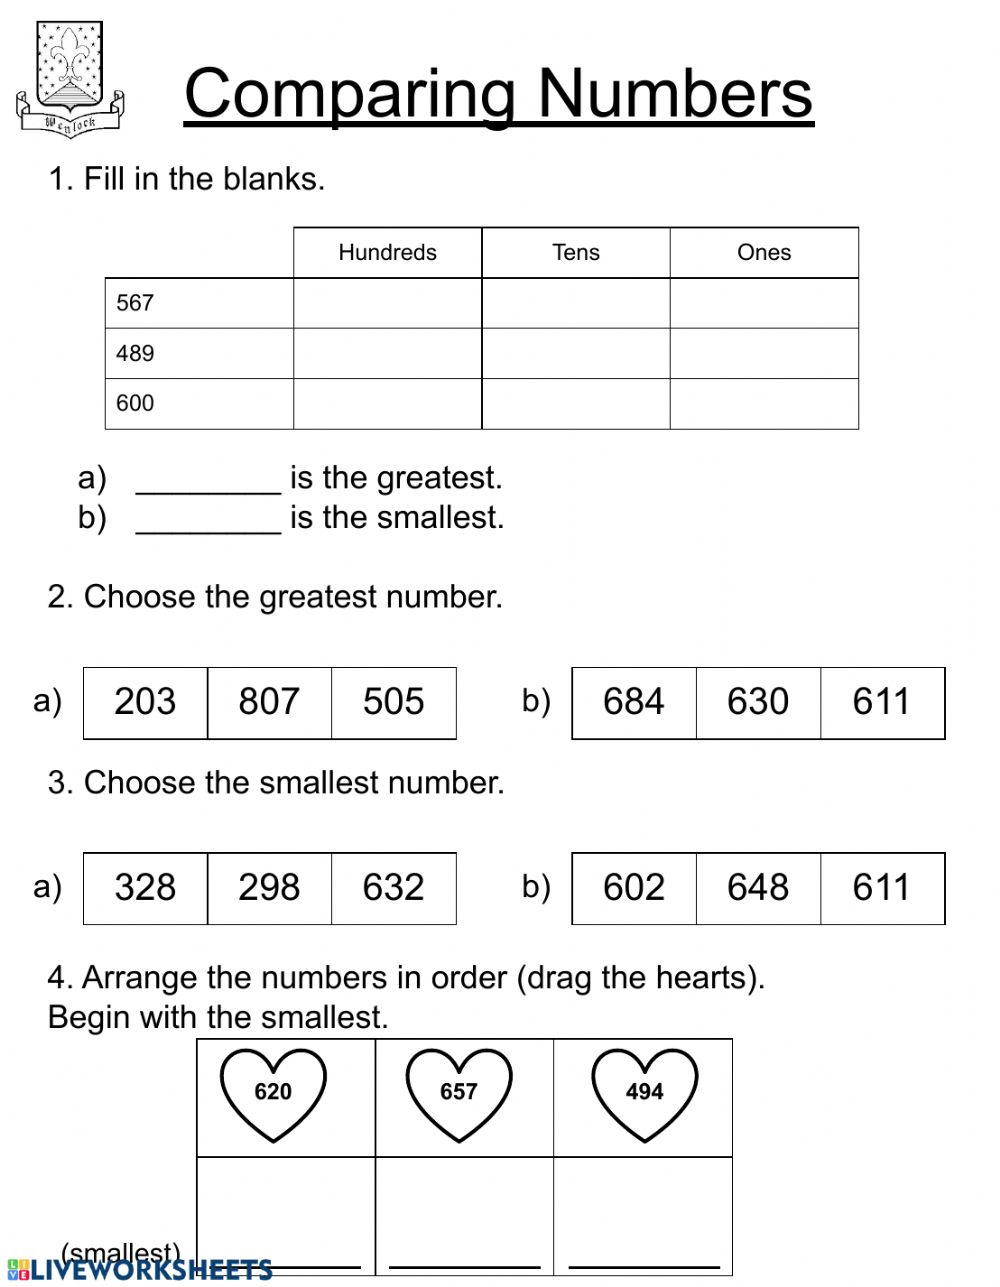 Comparing numbers - Second Grade worksheet